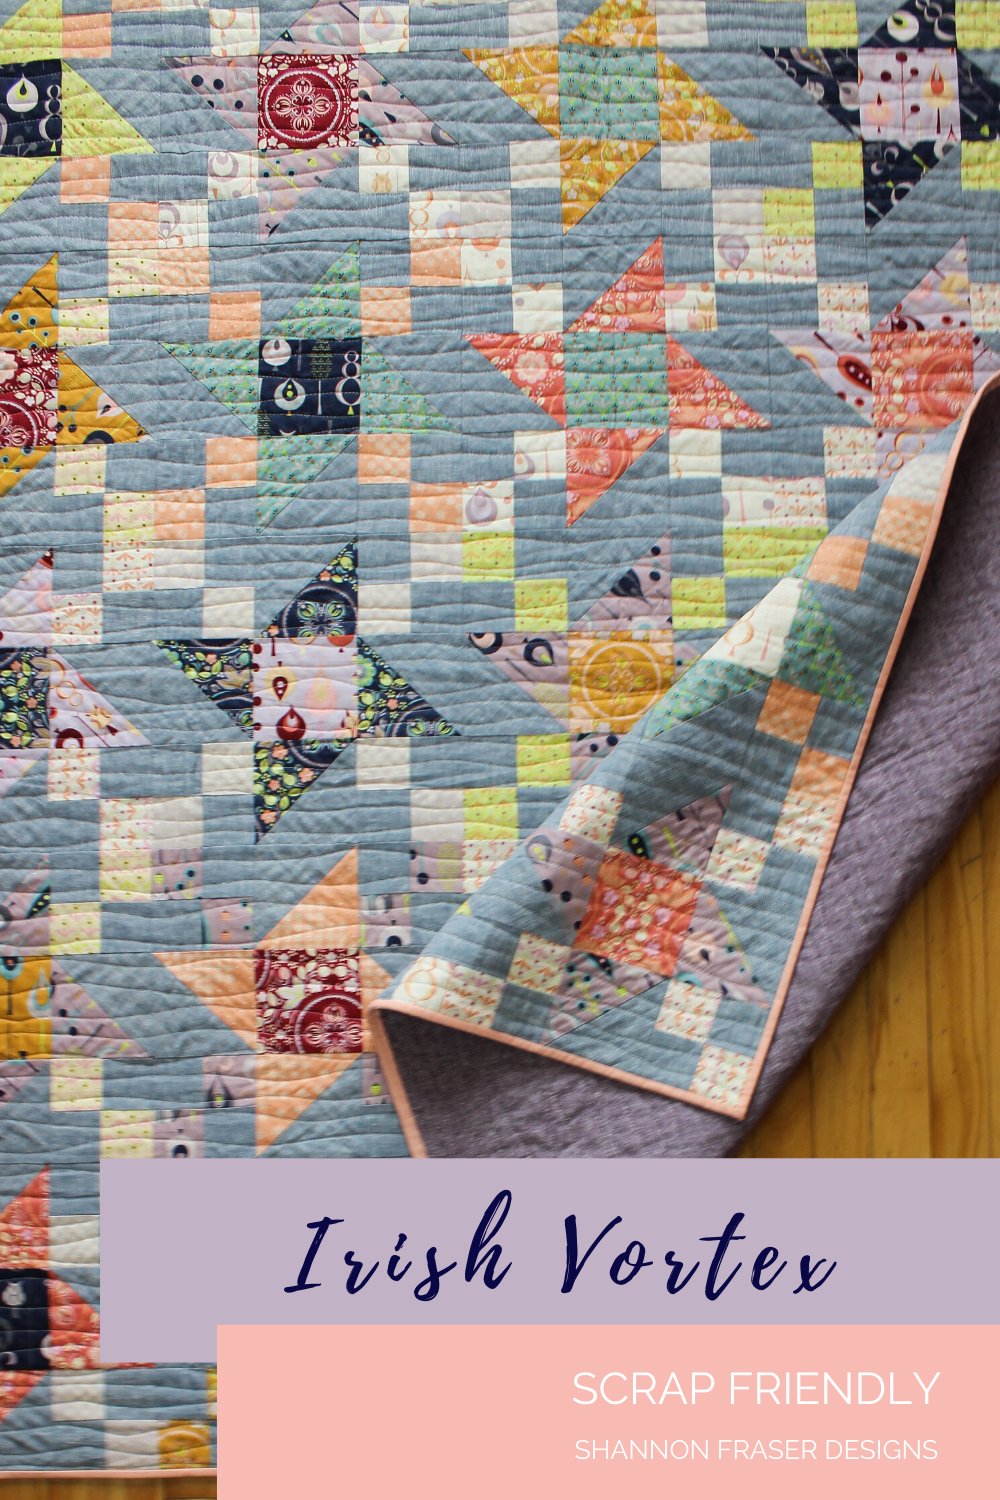 Autumn Irish Vortex quilt featuring fat quarter bundle and Brussels Washer line dyed linen | Irish Vortex quilt pattern | Shannon Fraser Designs #quilting